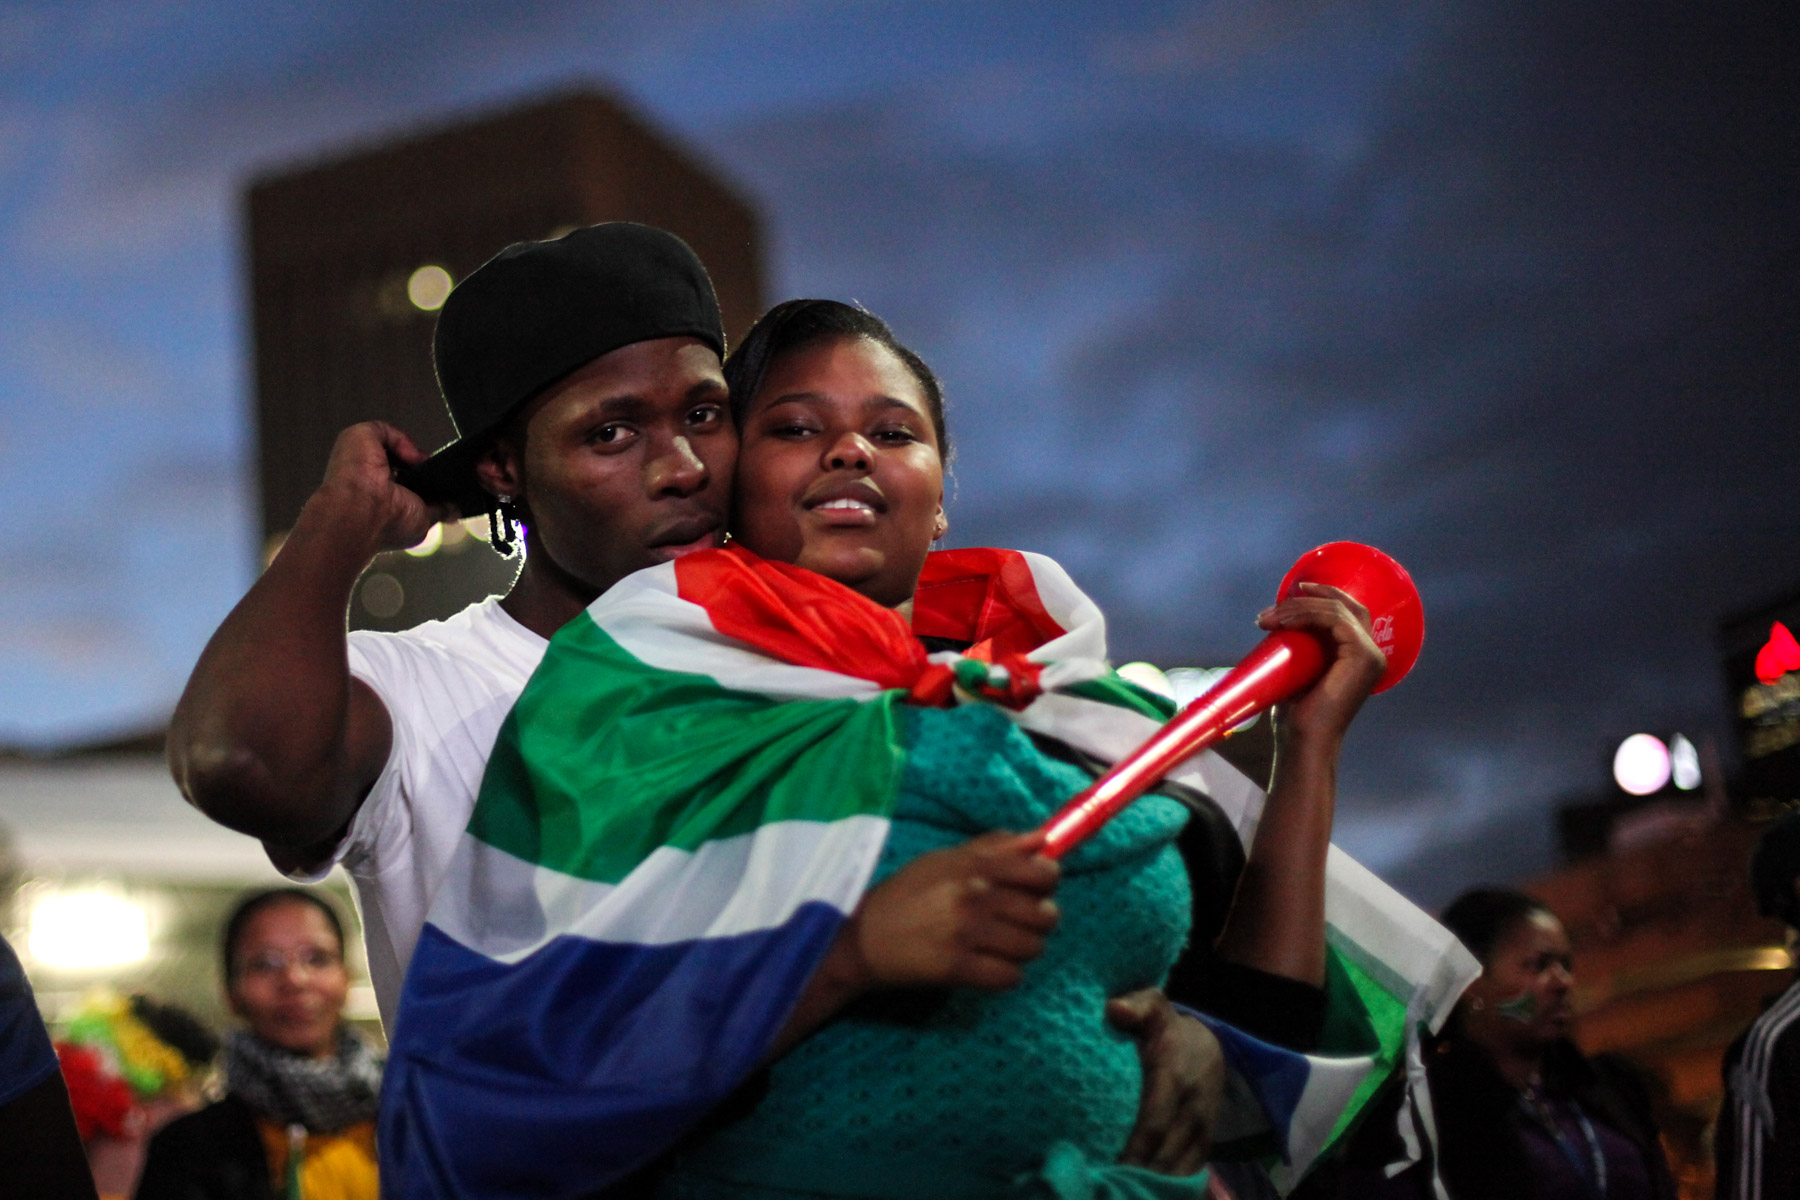 16 June 2010: Spectators gather at a fan viewing area in Cape Town for Bafana Bafana's group stage match against Uruguay. (Photograph by Dan Kitwood/ Getty Images)